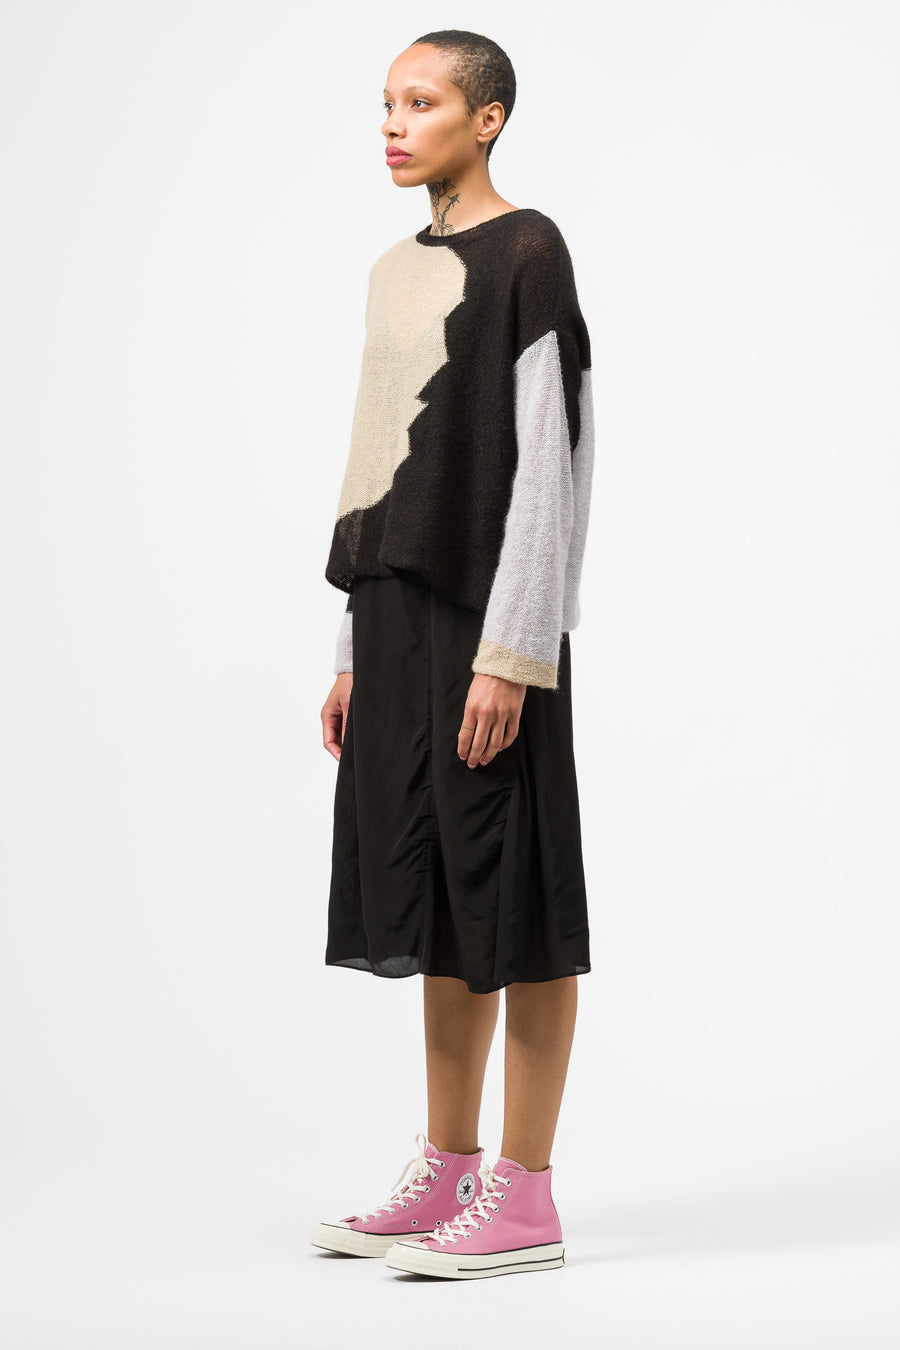 Eckhaus Latta Landscape Sweater in Black Multi - Notre